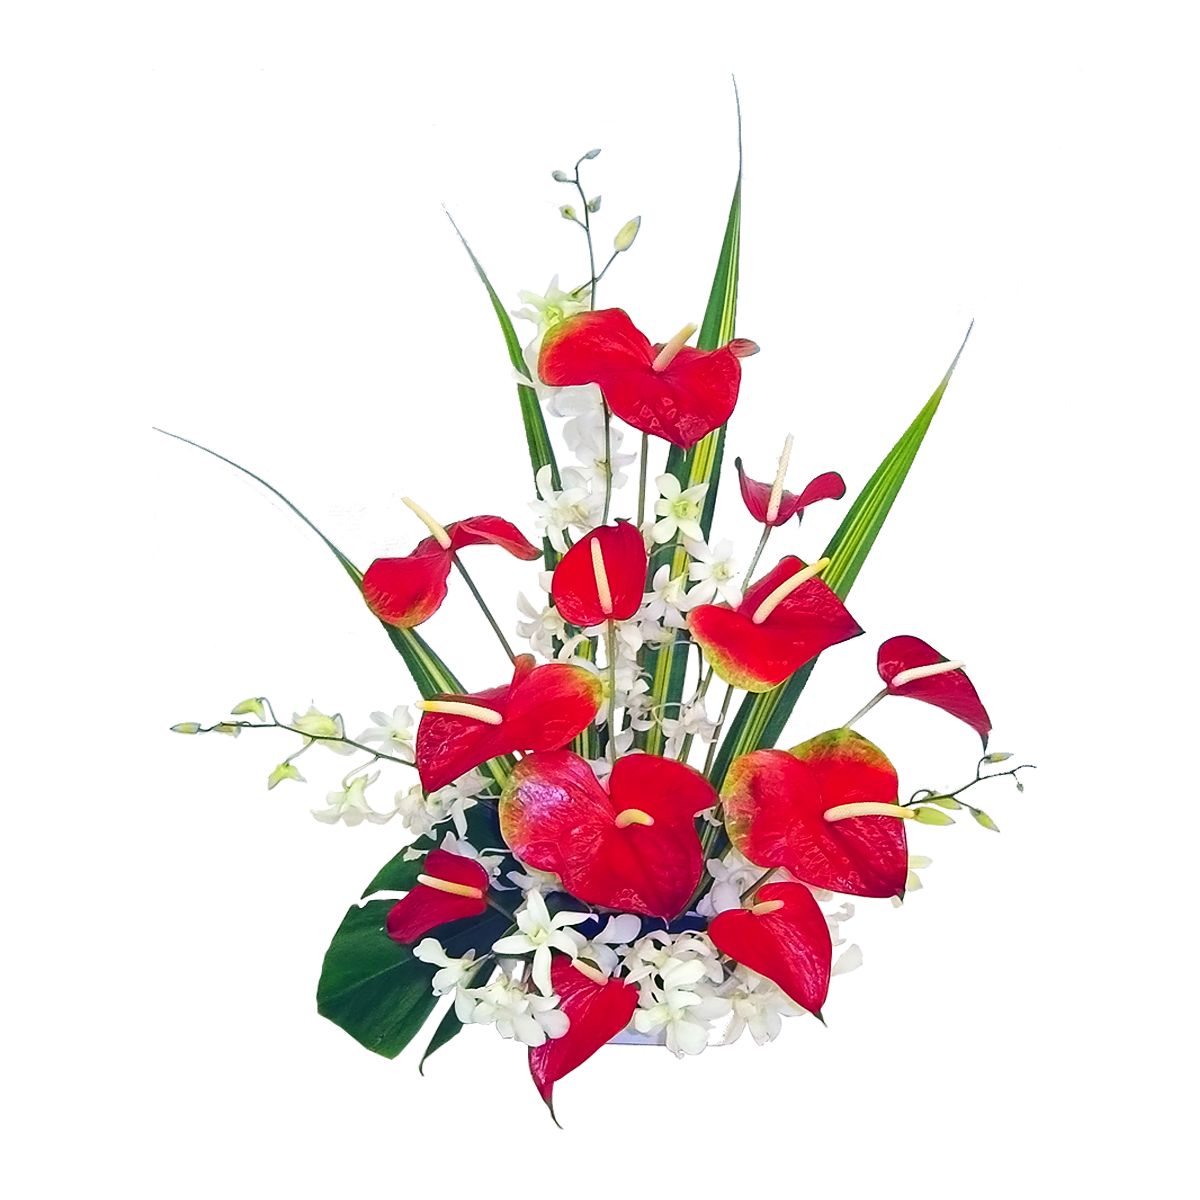 Lava fountain hawaii flower. Heart clipart bouquet